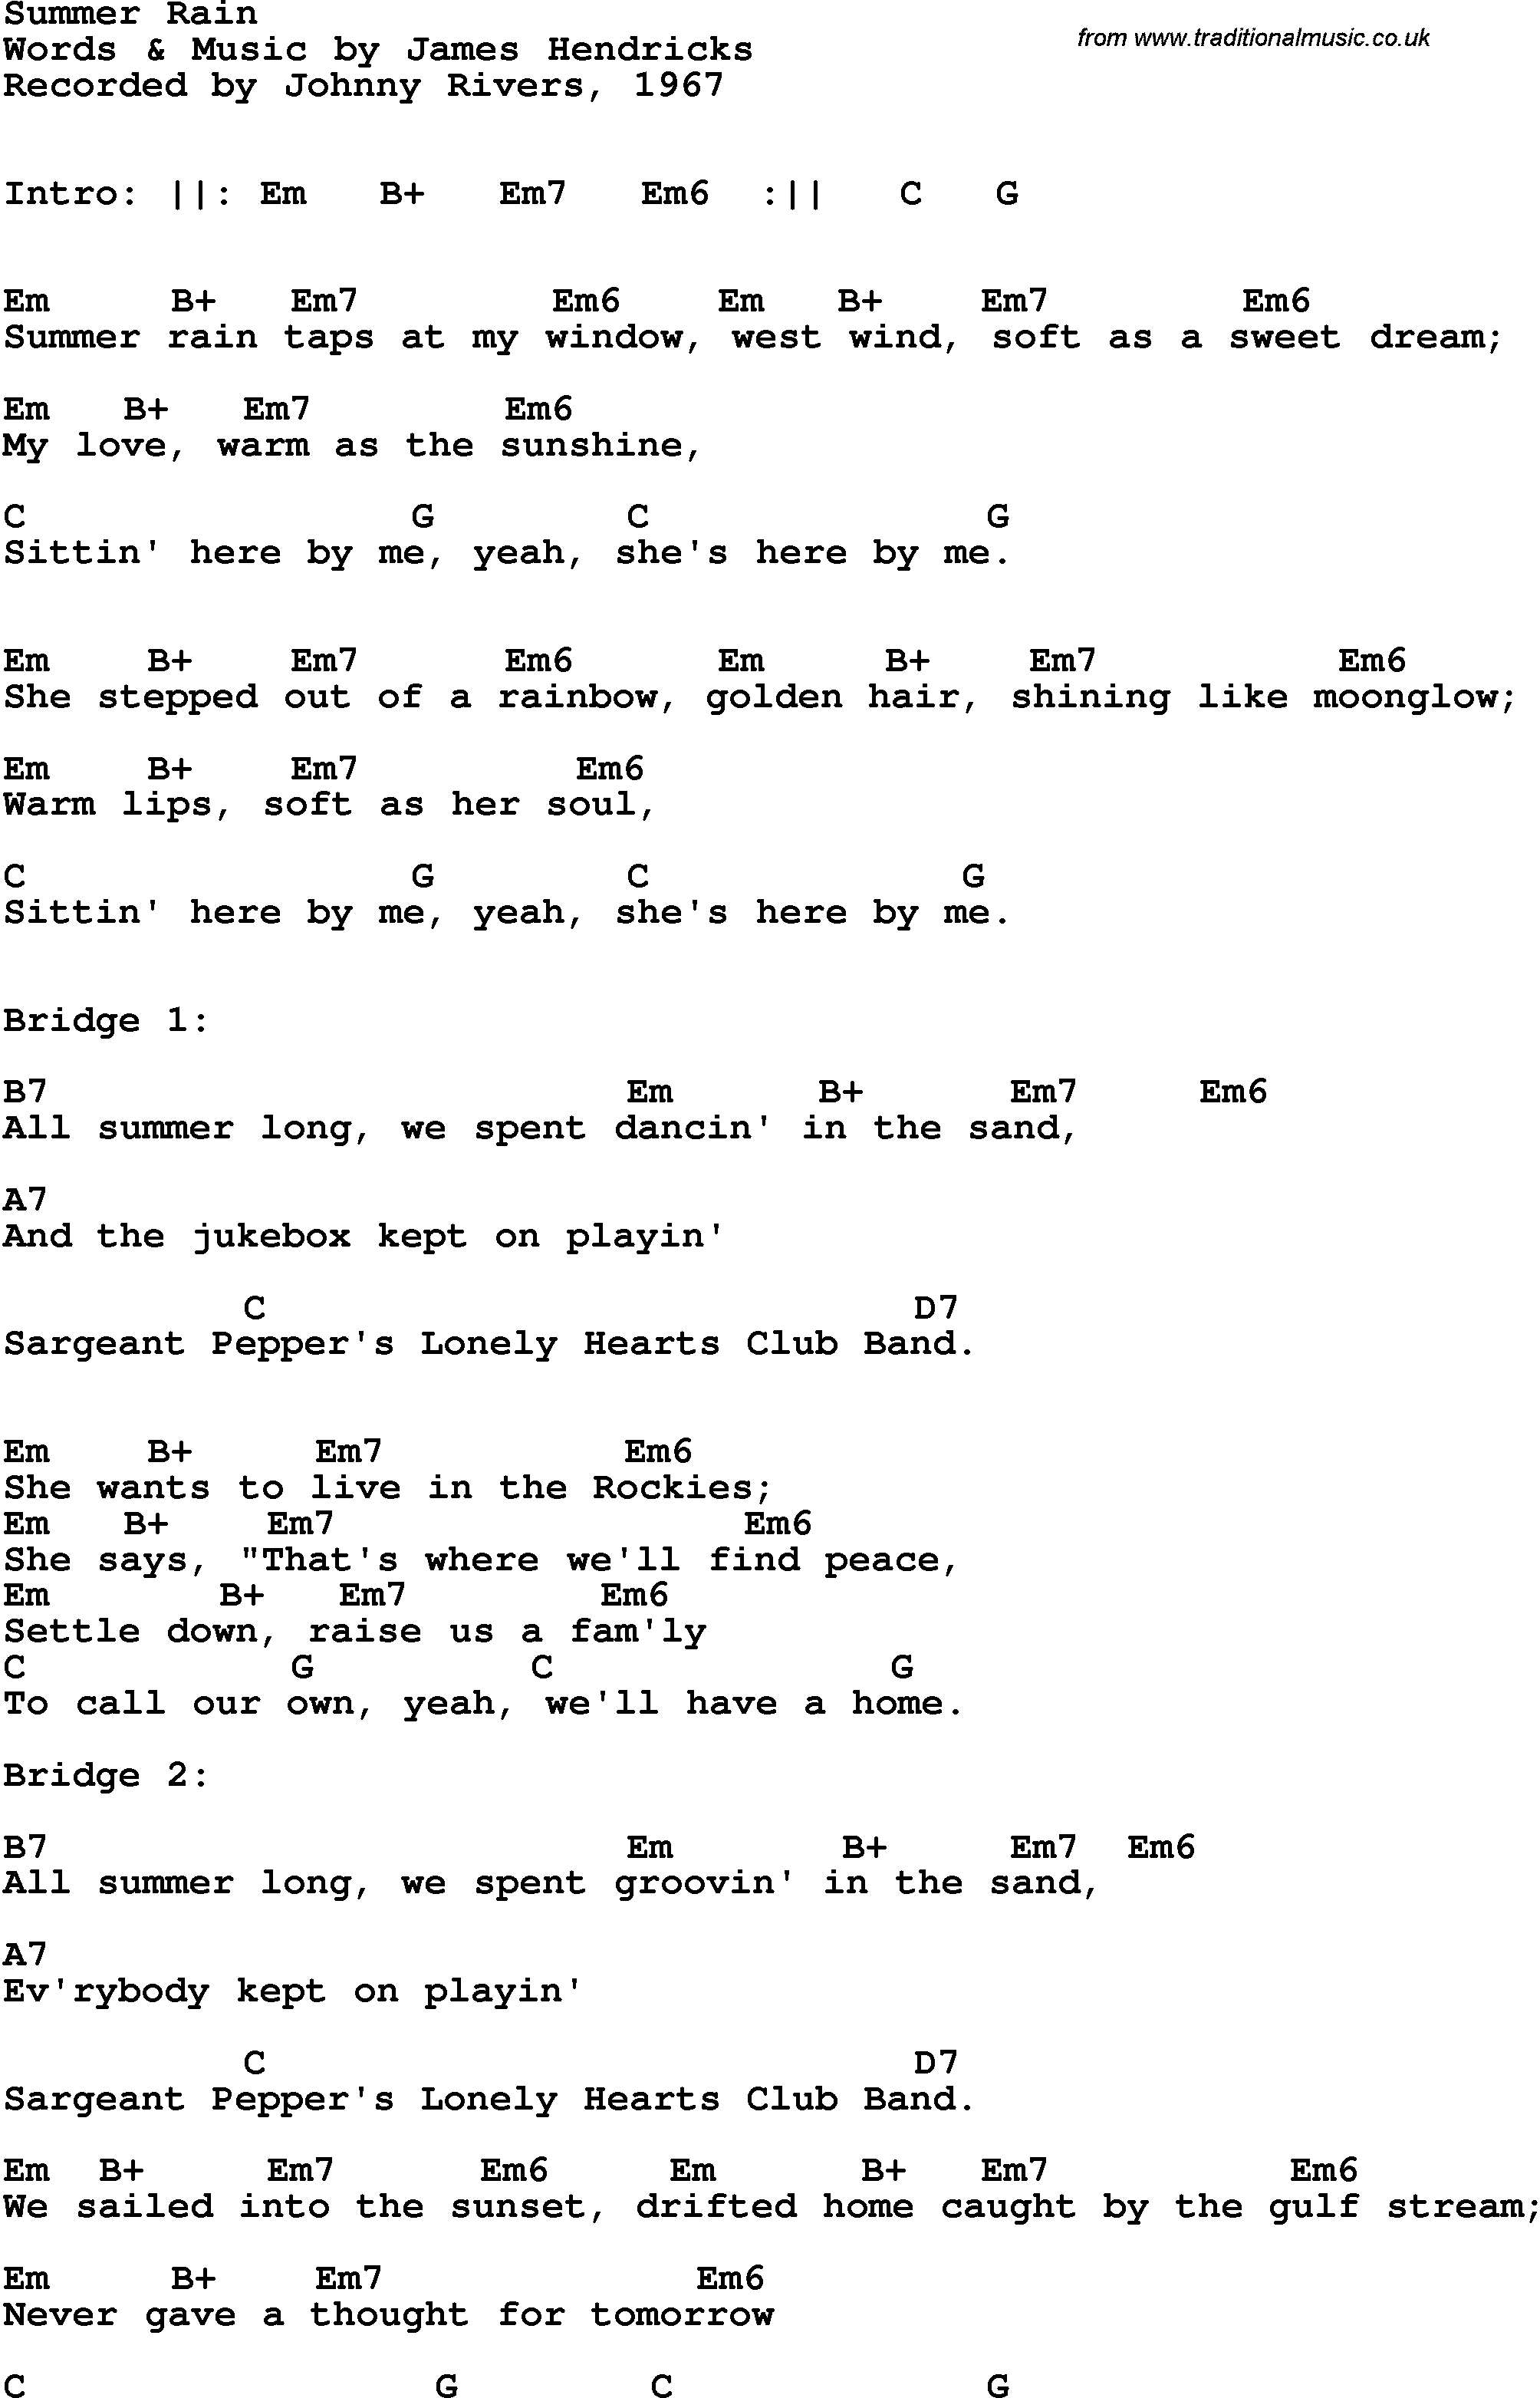 Song lyrics with guitar chords for Summer Rain - Johnny